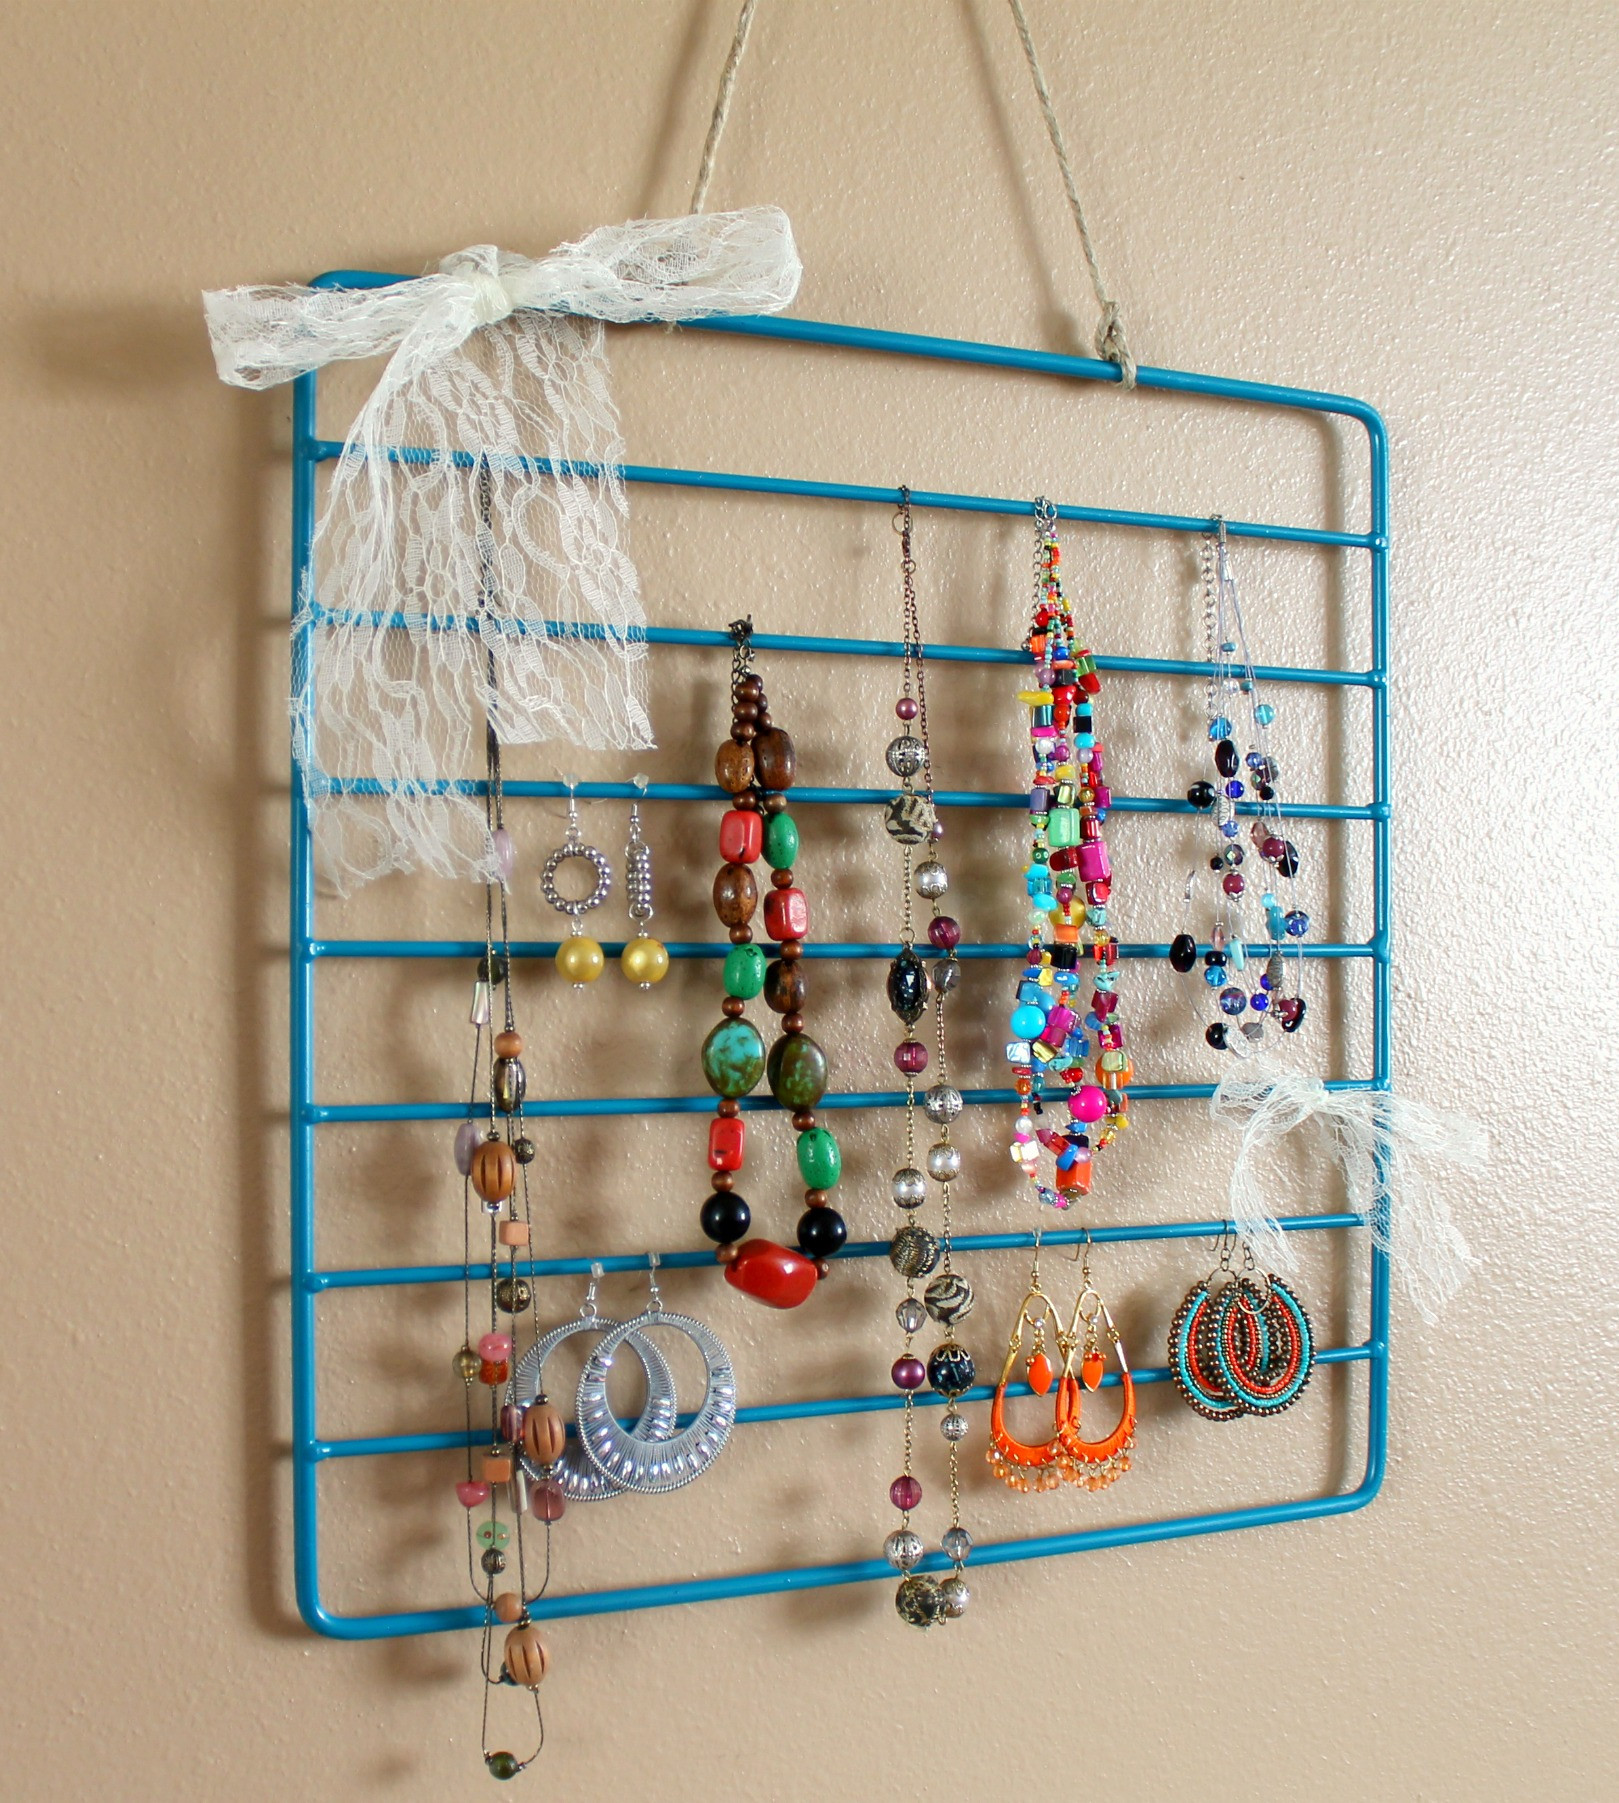 Best ideas about DIY Jewelry Rack . Save or Pin DIY Jewelry Organization Roundup Now.